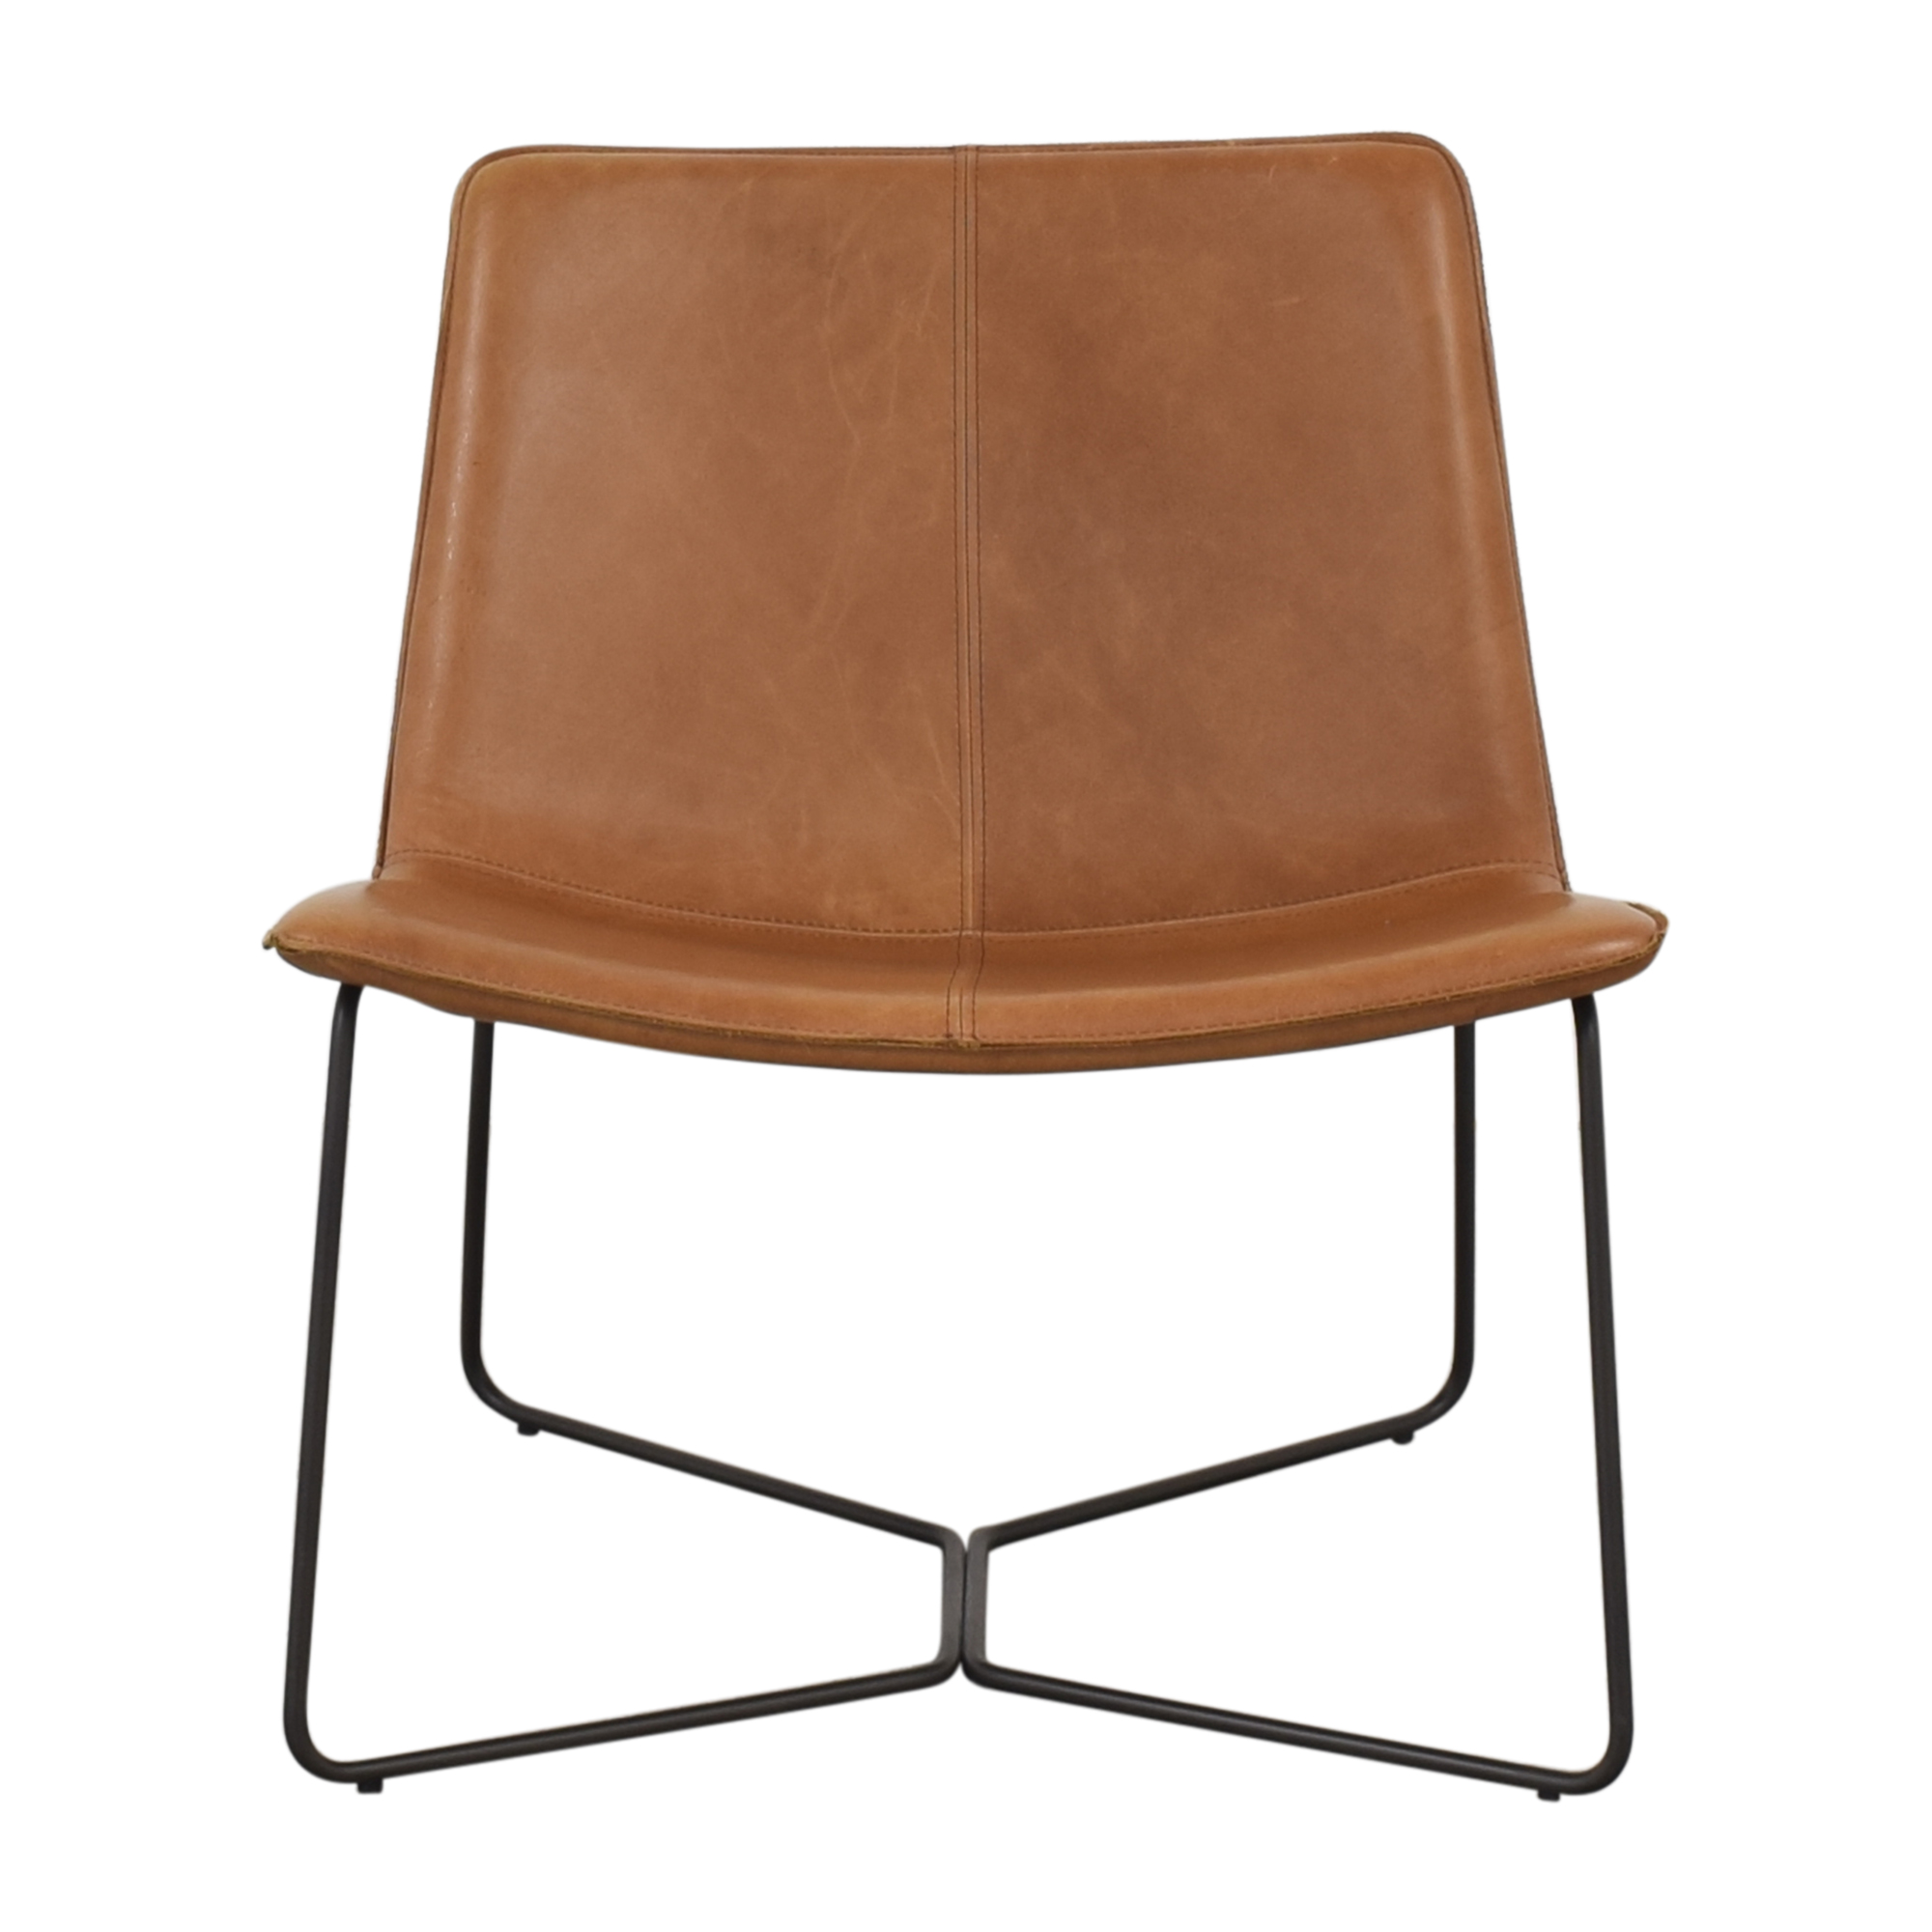 West Elm West Elm Slope Leather Lounge Chair Accent Chairs